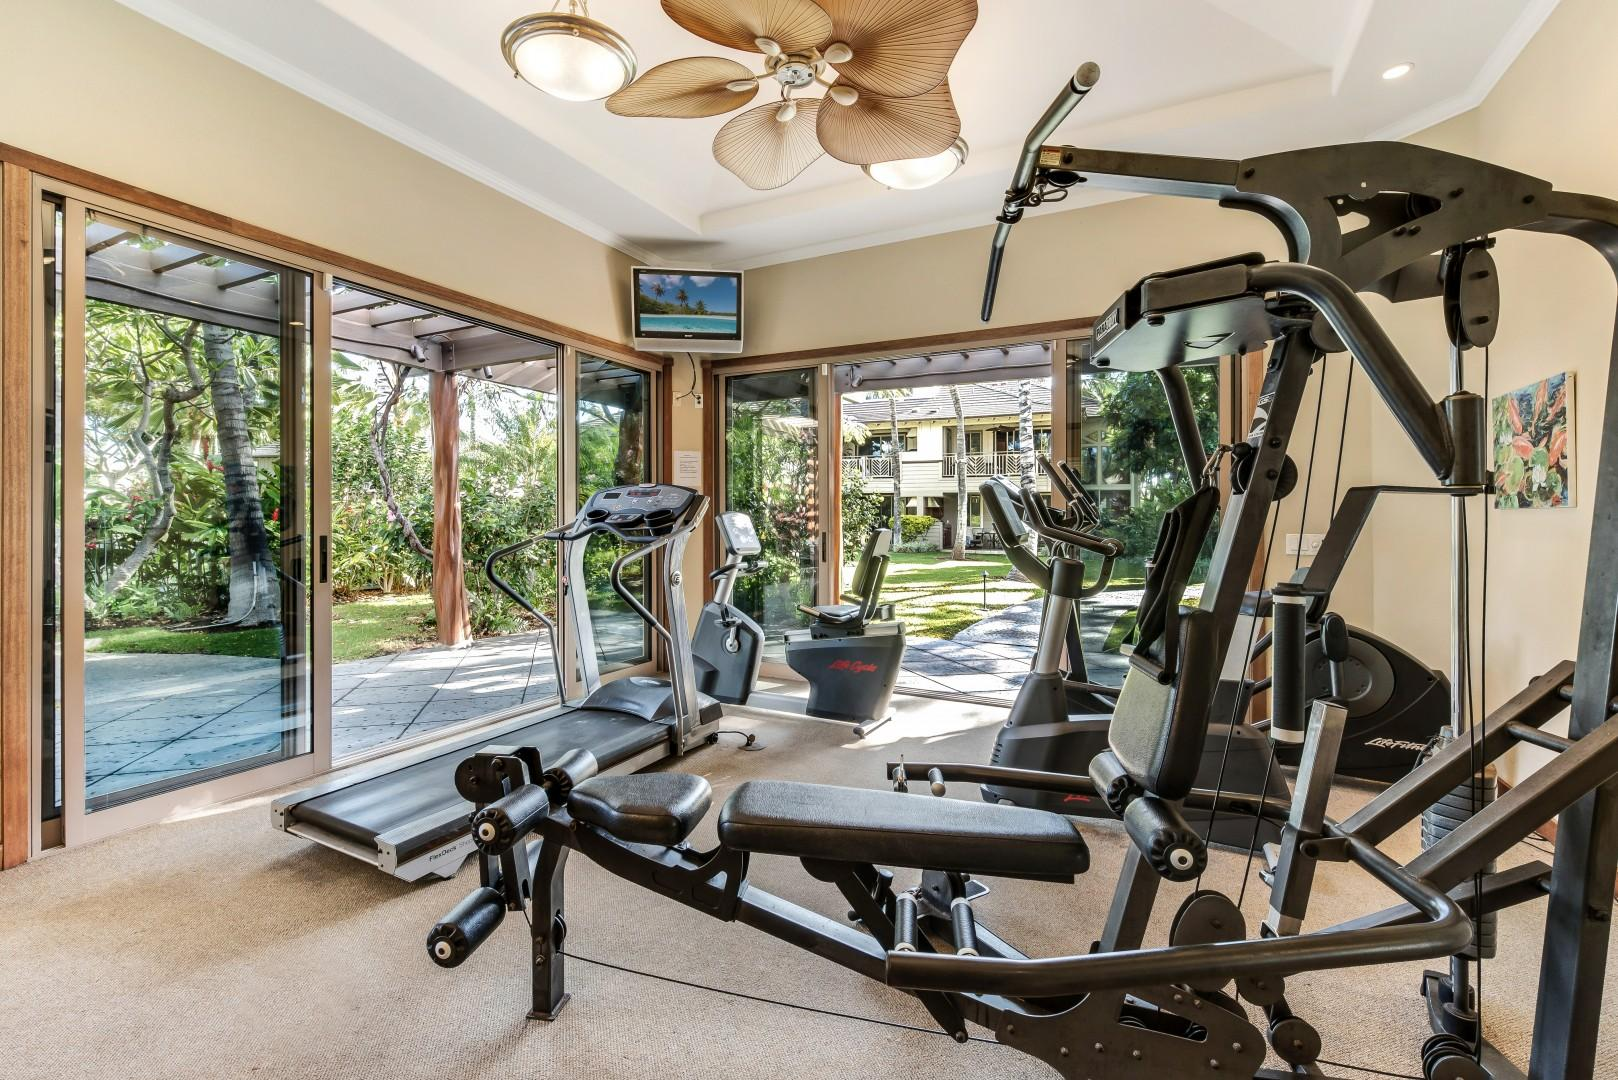 Air-Conditioned Fitness Room Next to Swimming Pool